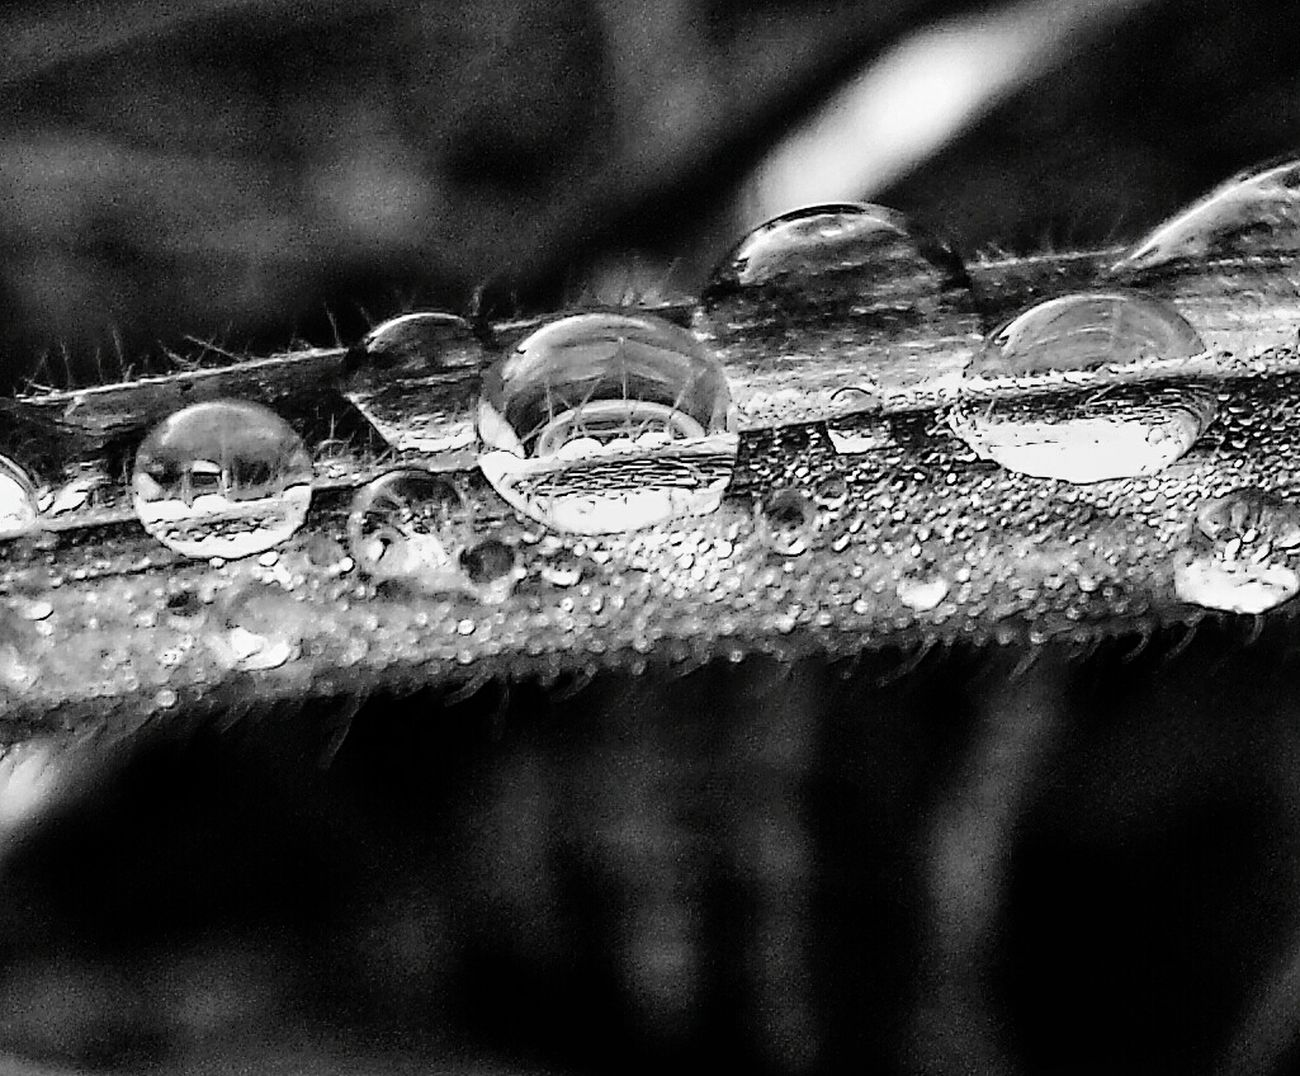 Water droplets on a blade of grass. Check This Out First Eyeem Photo Taking Photos Waterdrops Blackandwhite Blackandwhitephotography Reflection Grass